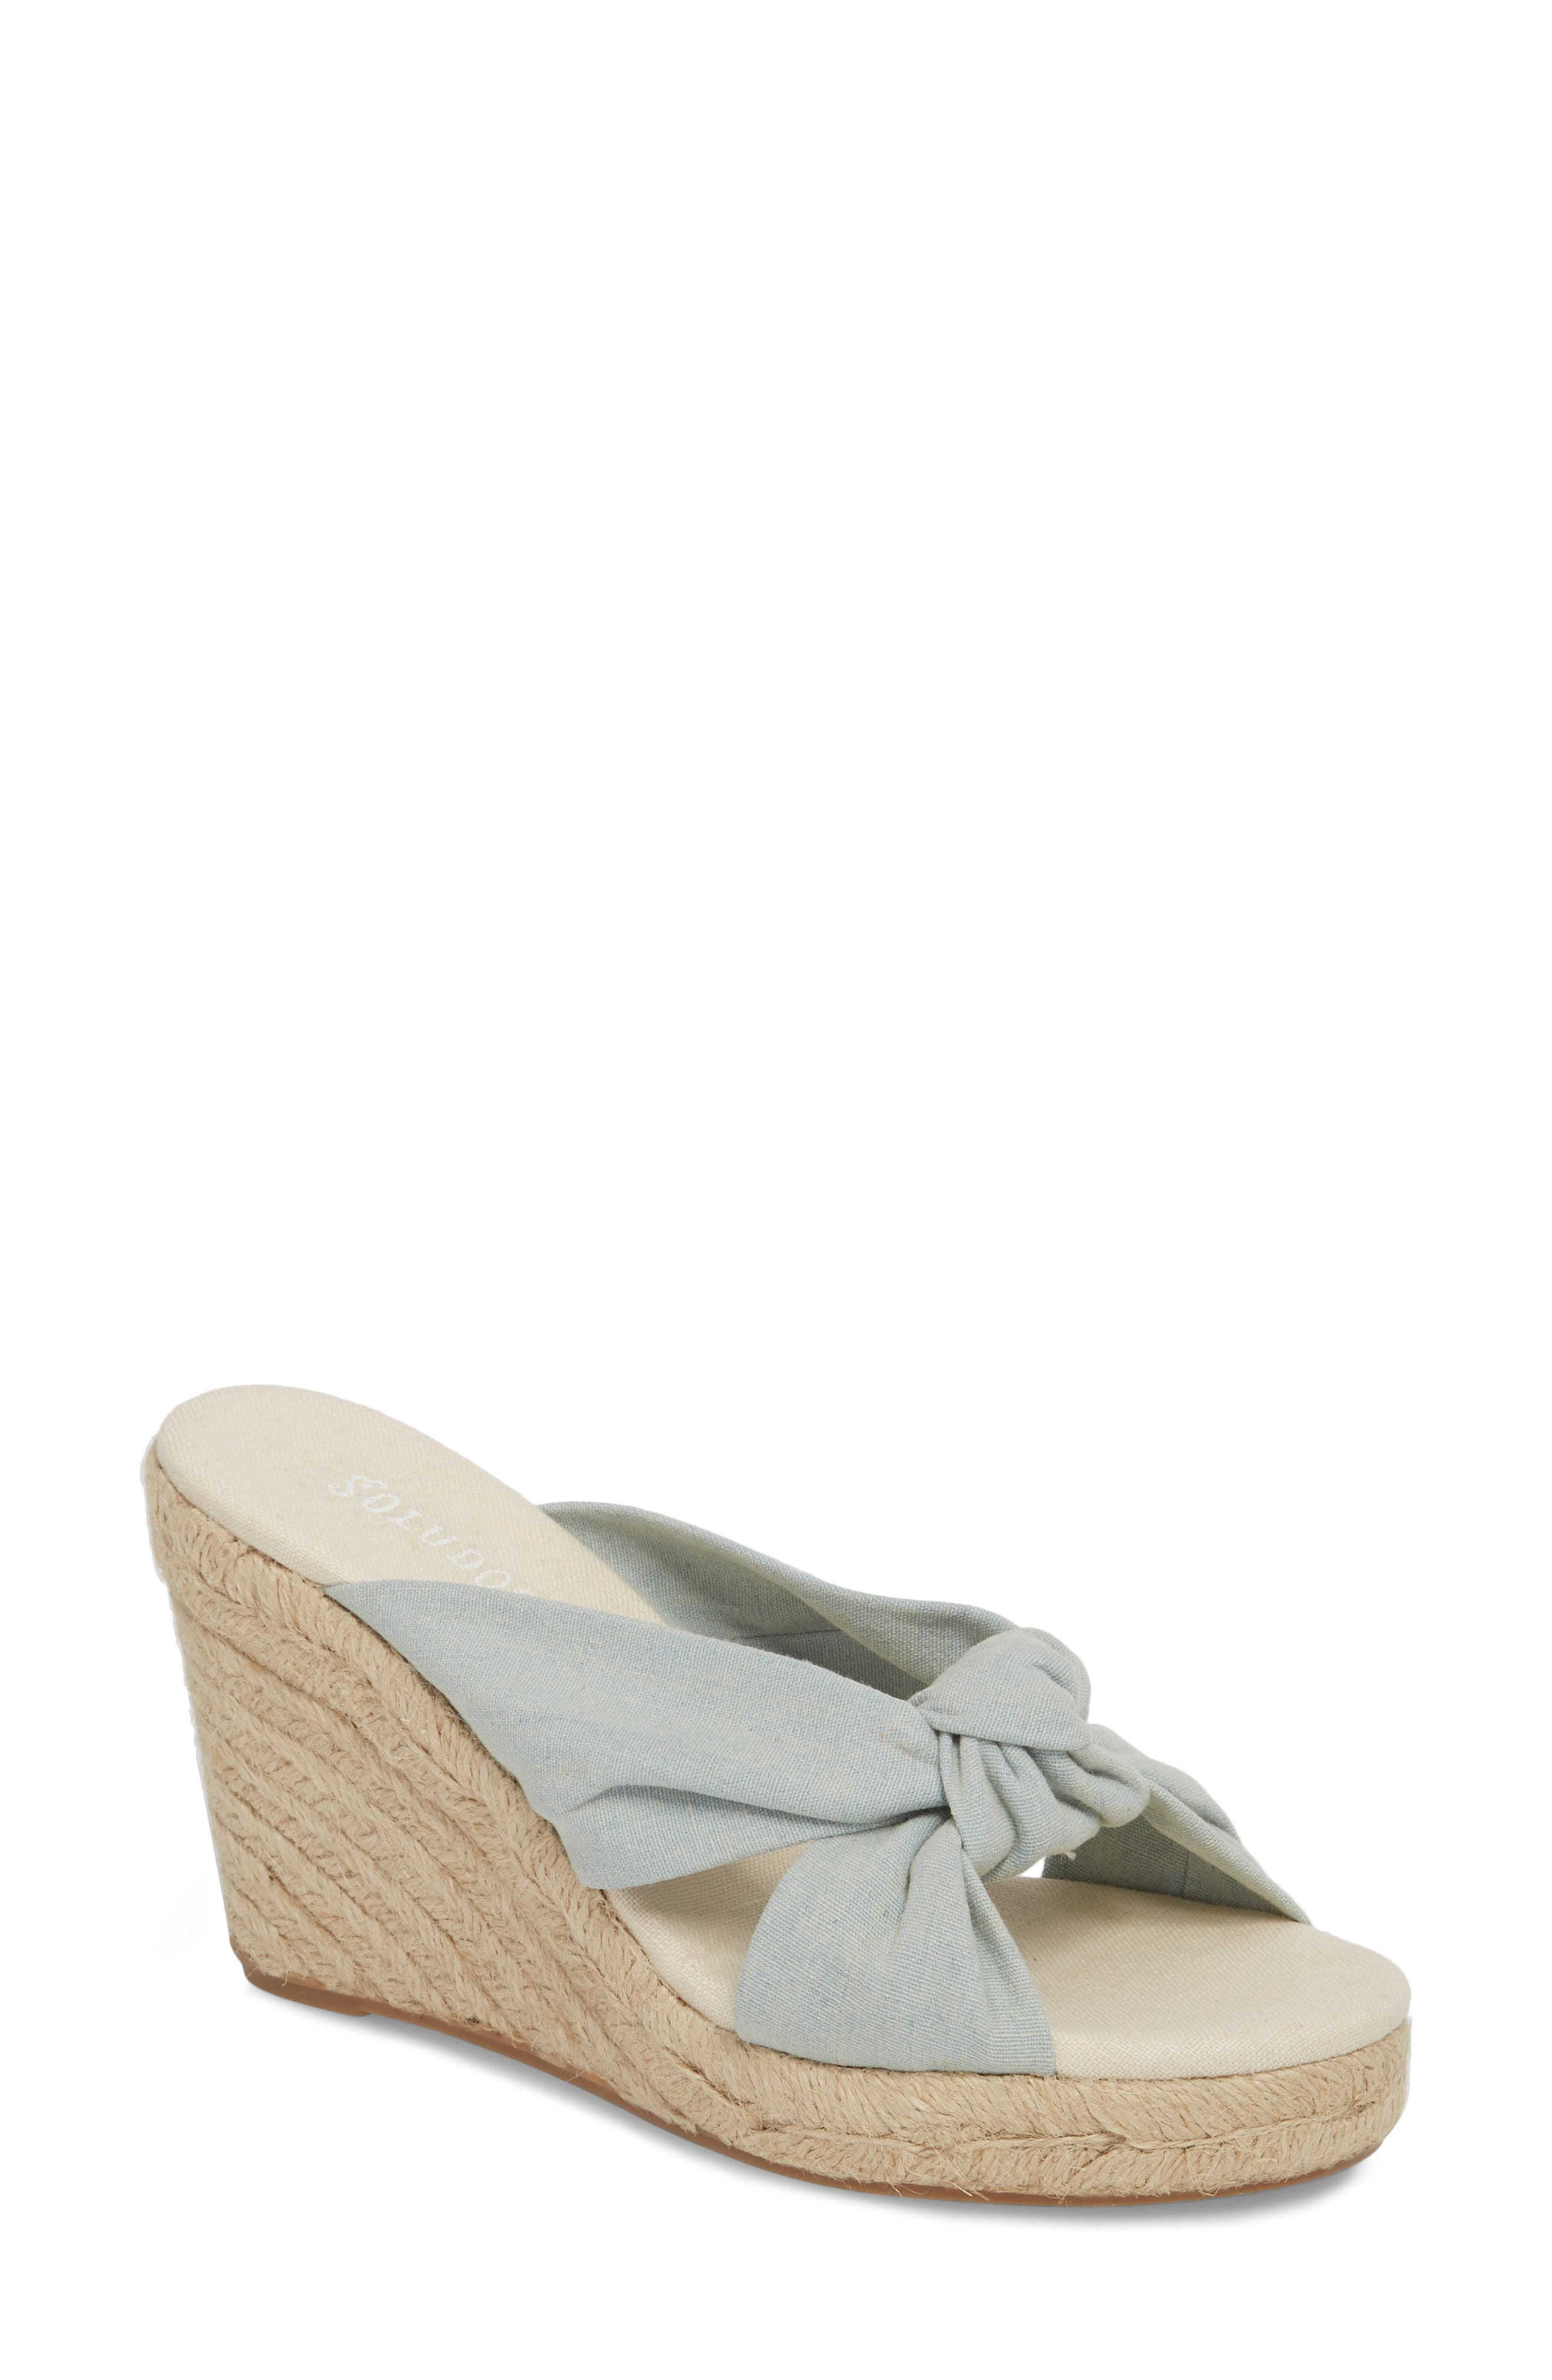 Knotted Espadrille Wedge Sandal,                             Main thumbnail 1, color,                             Chambray